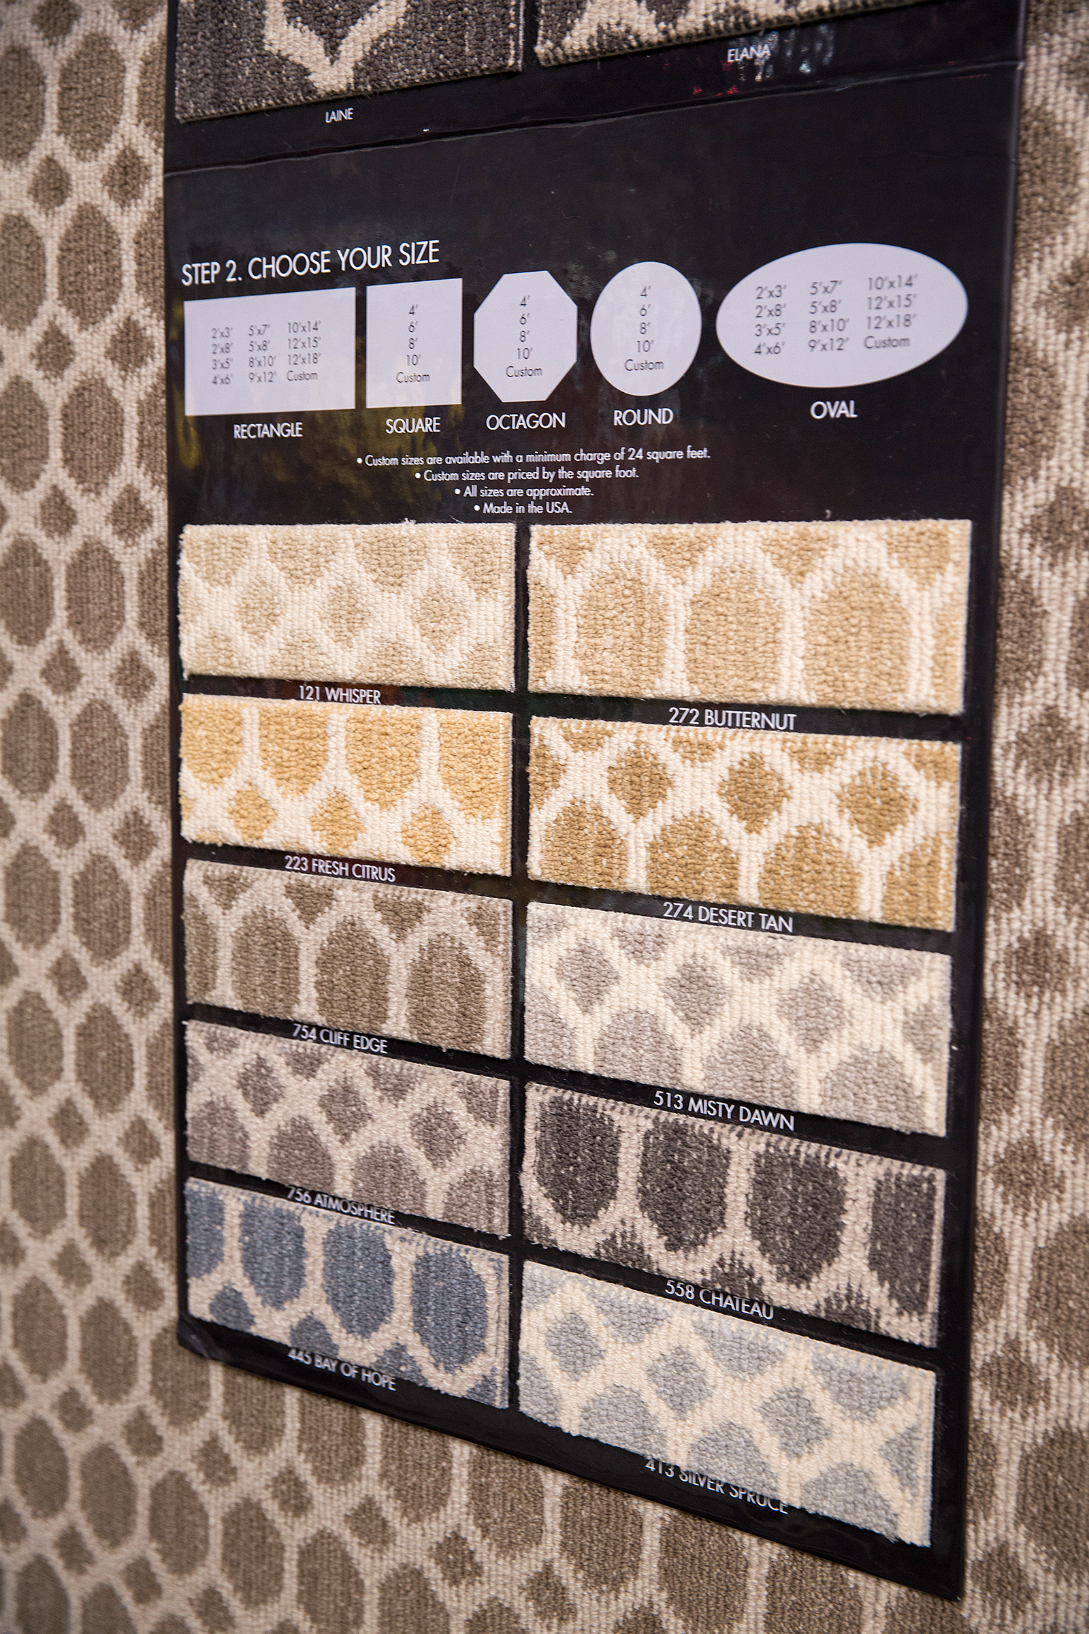 Oct. 17, 2014 U2014 Surya Will Unveil At High Point Market A New Custom Rug  Program That Will Enable Designers And Retailers To Order Custom Tufted Rugs  For ...